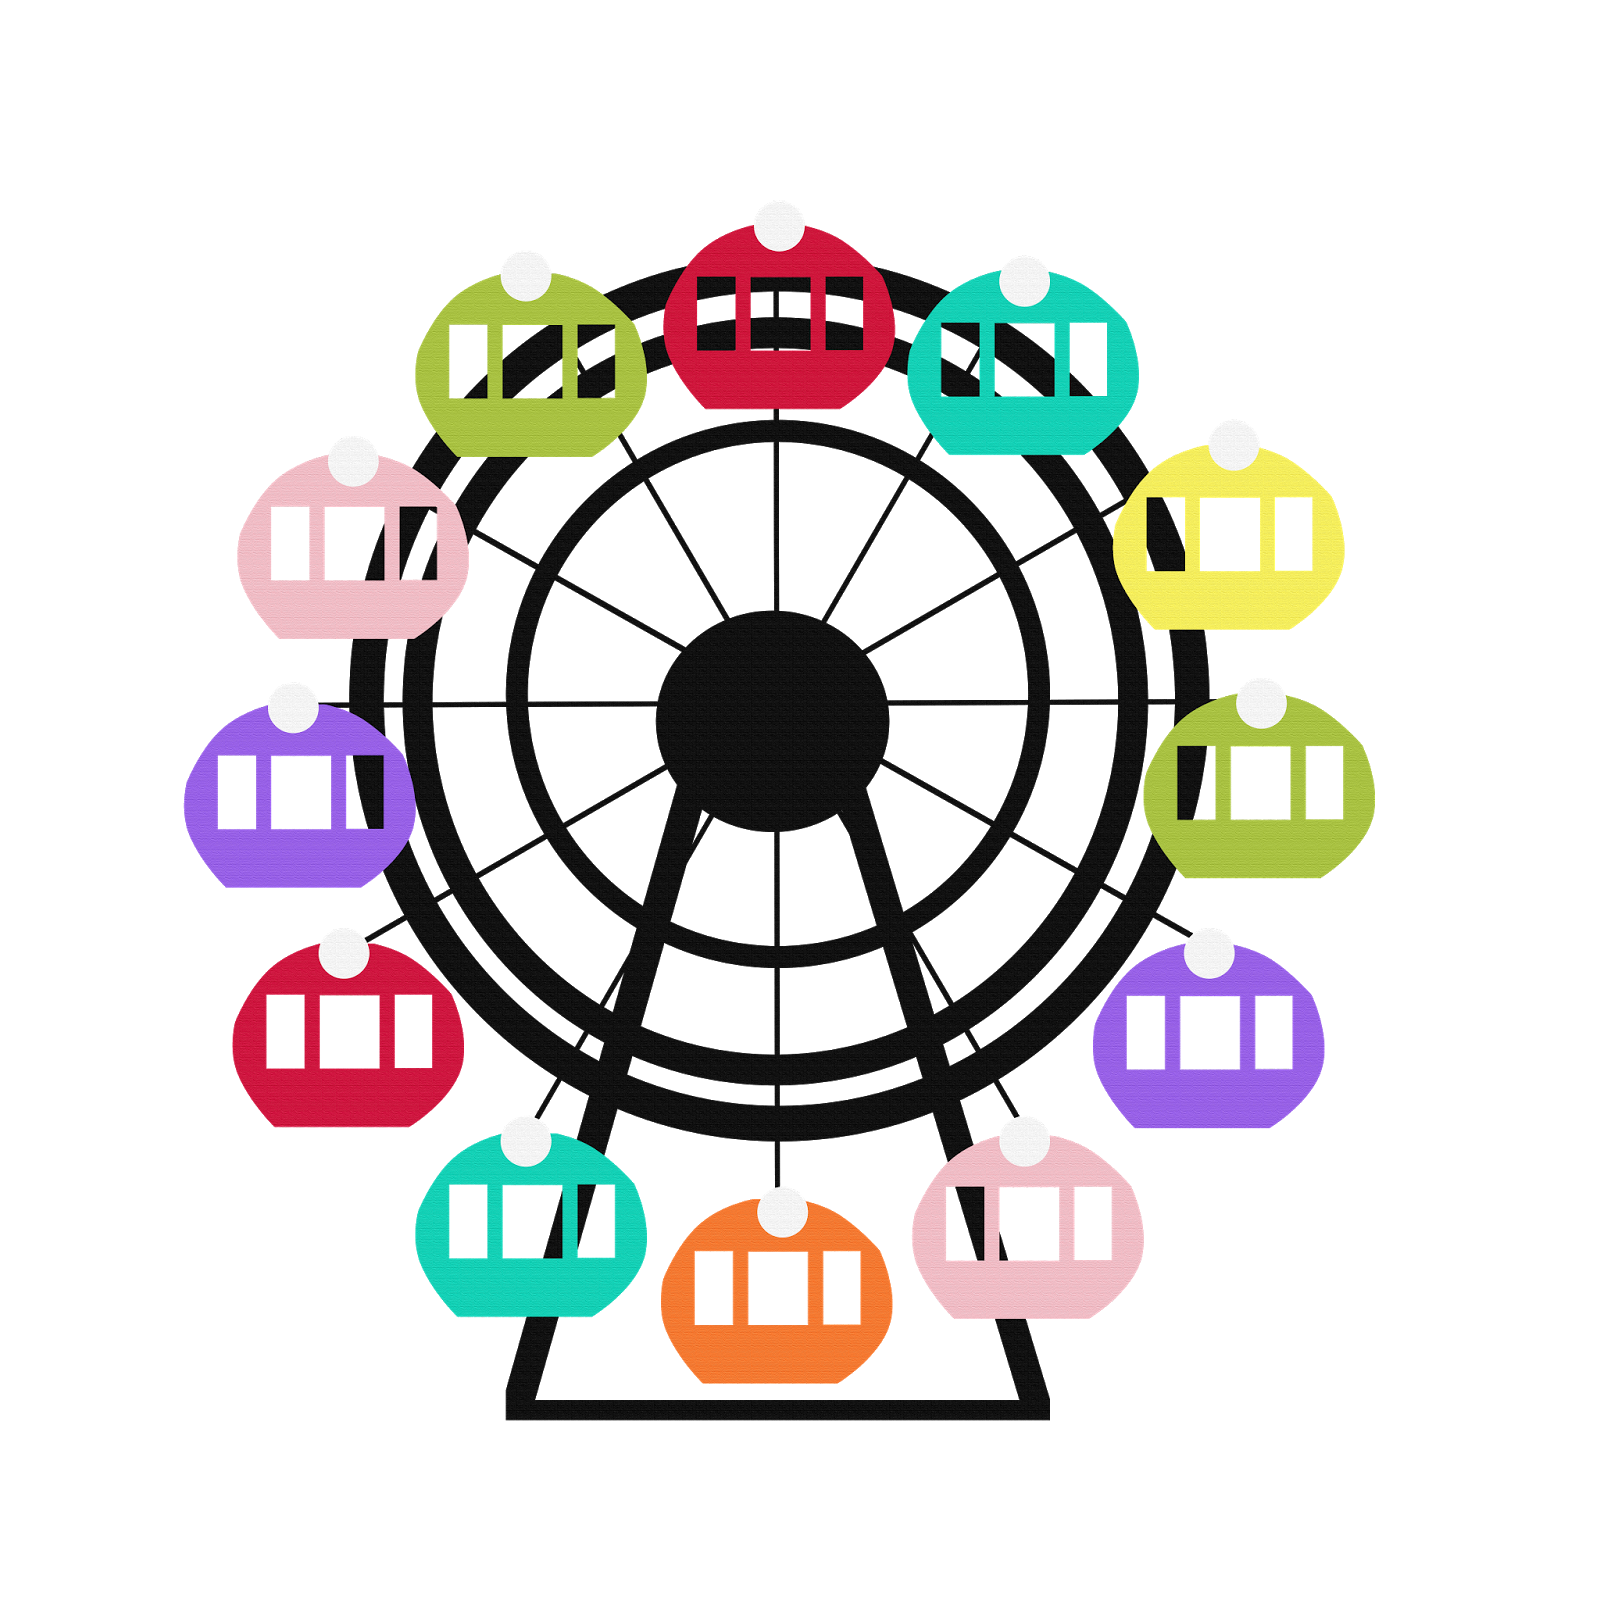 ferris wheel clipart png - photo #14